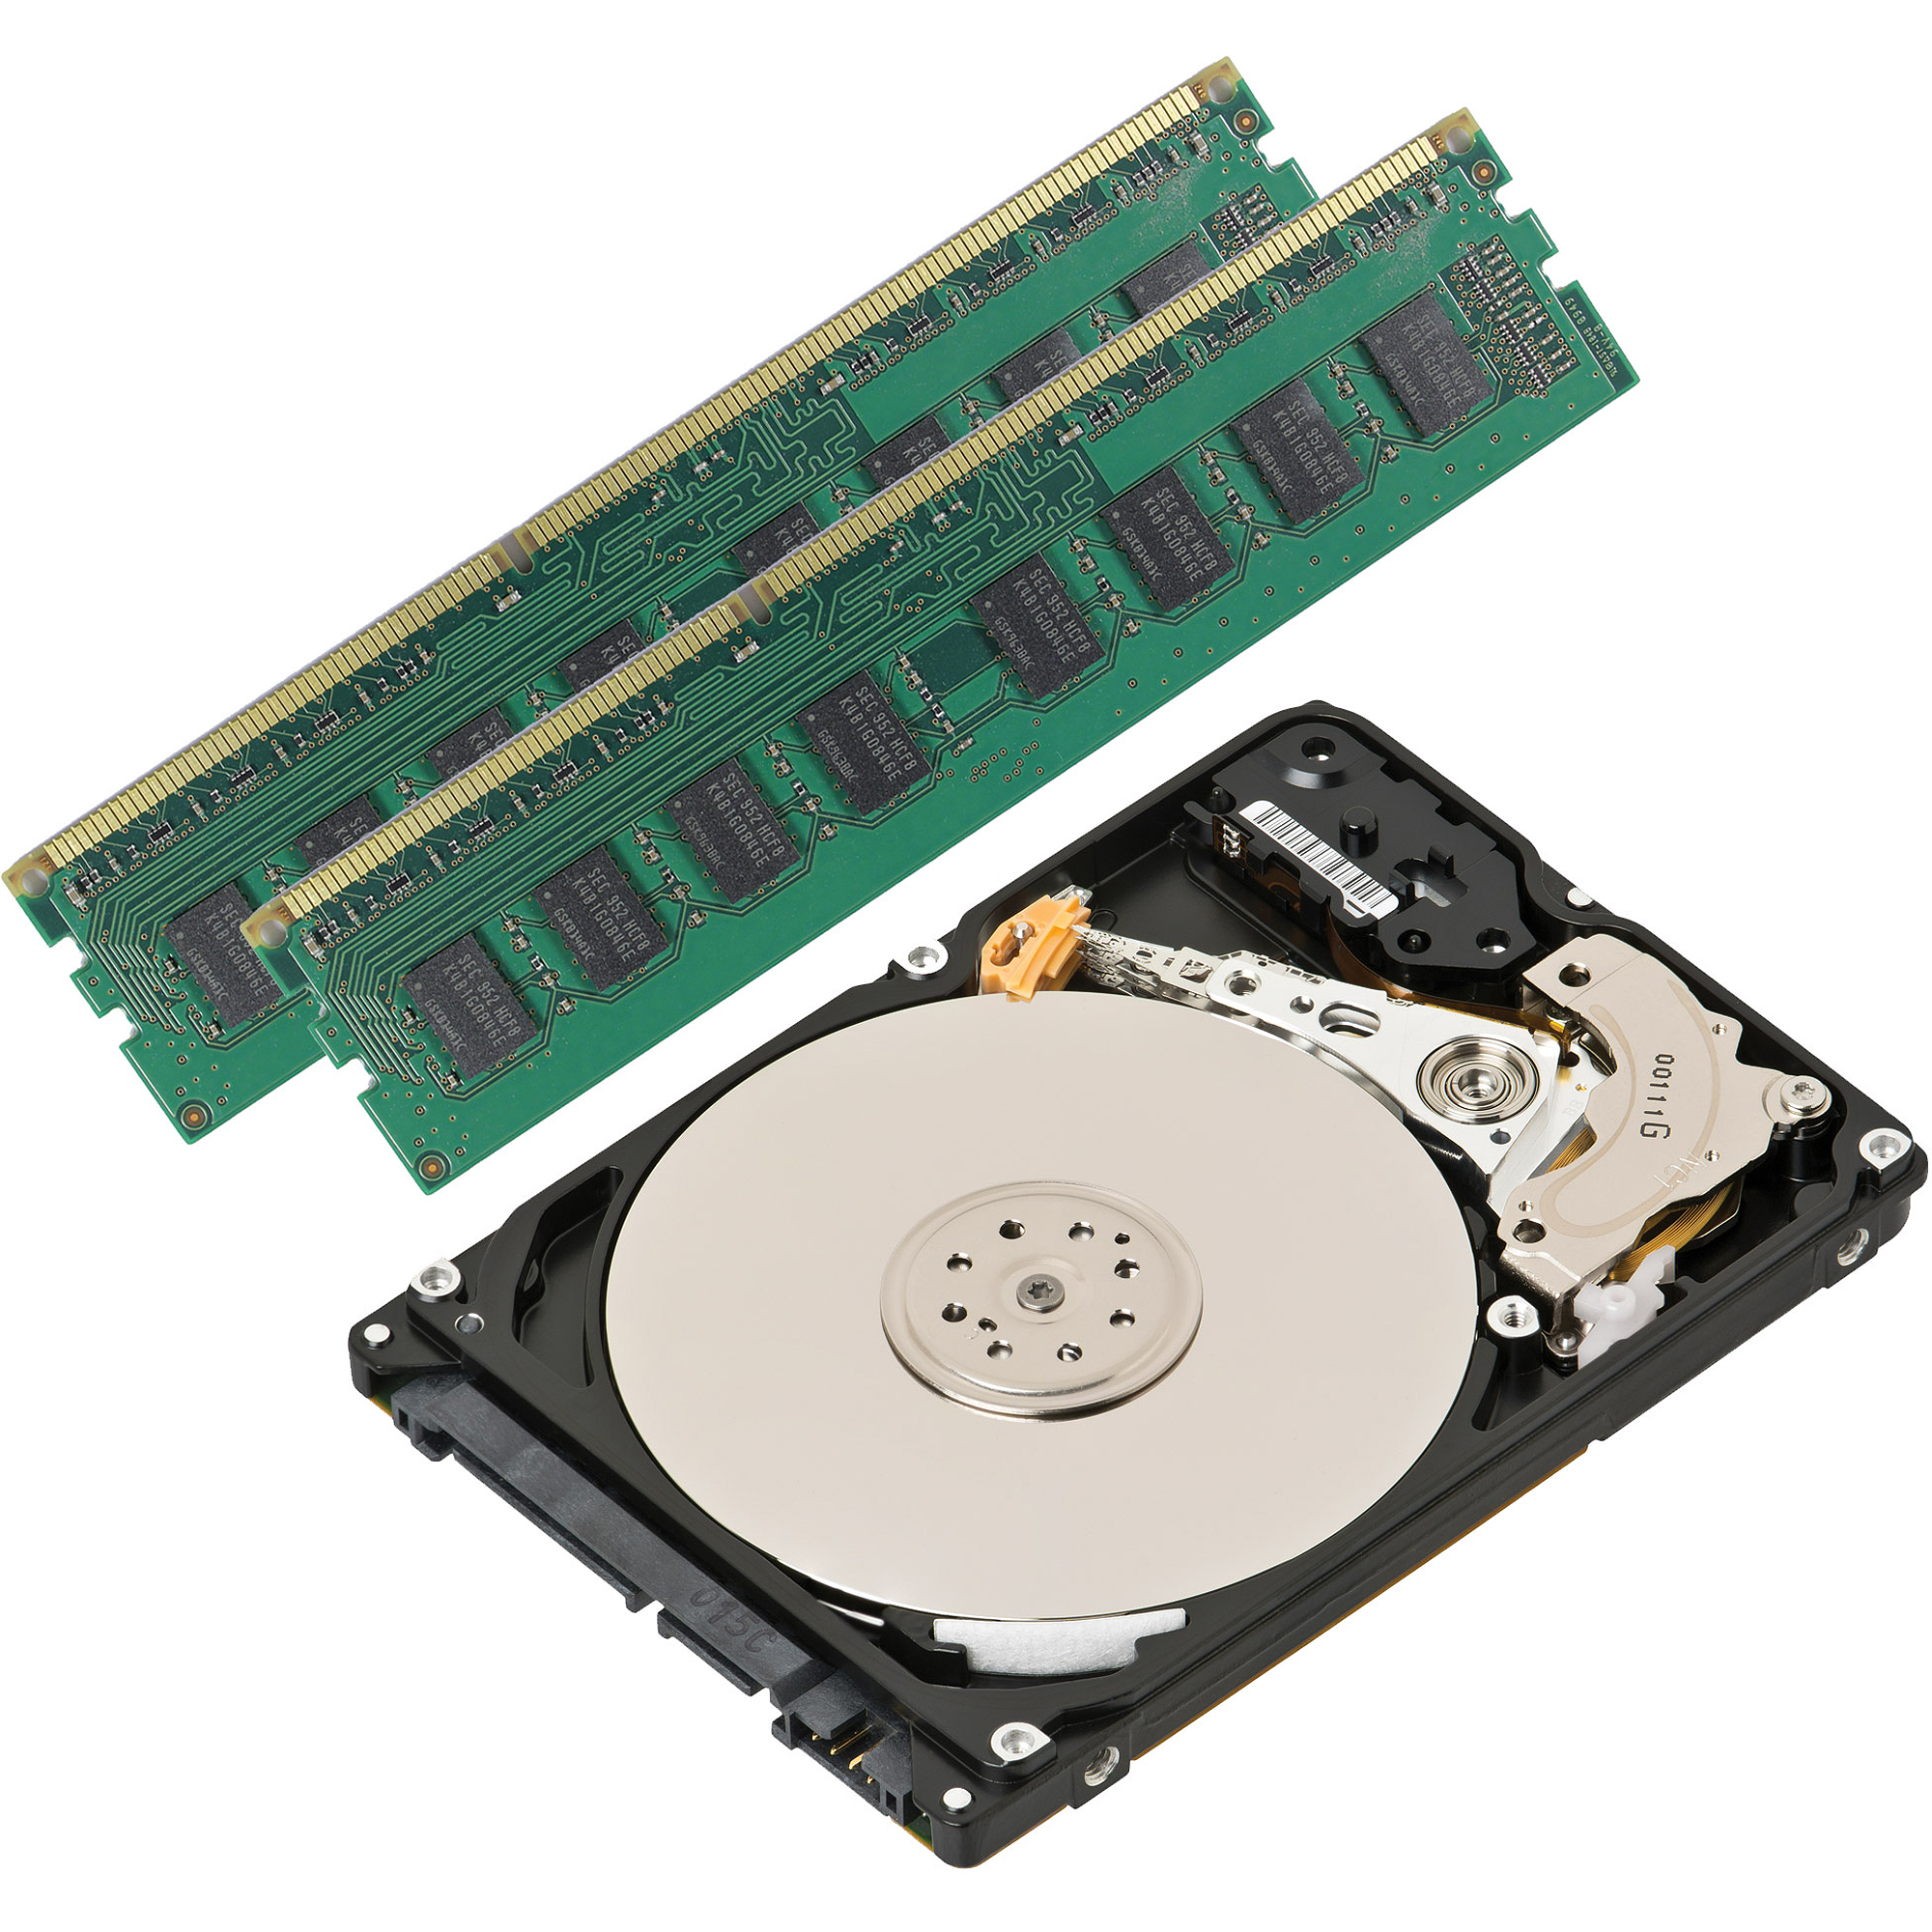 8GB DDR3 + 1TB Hard Drive